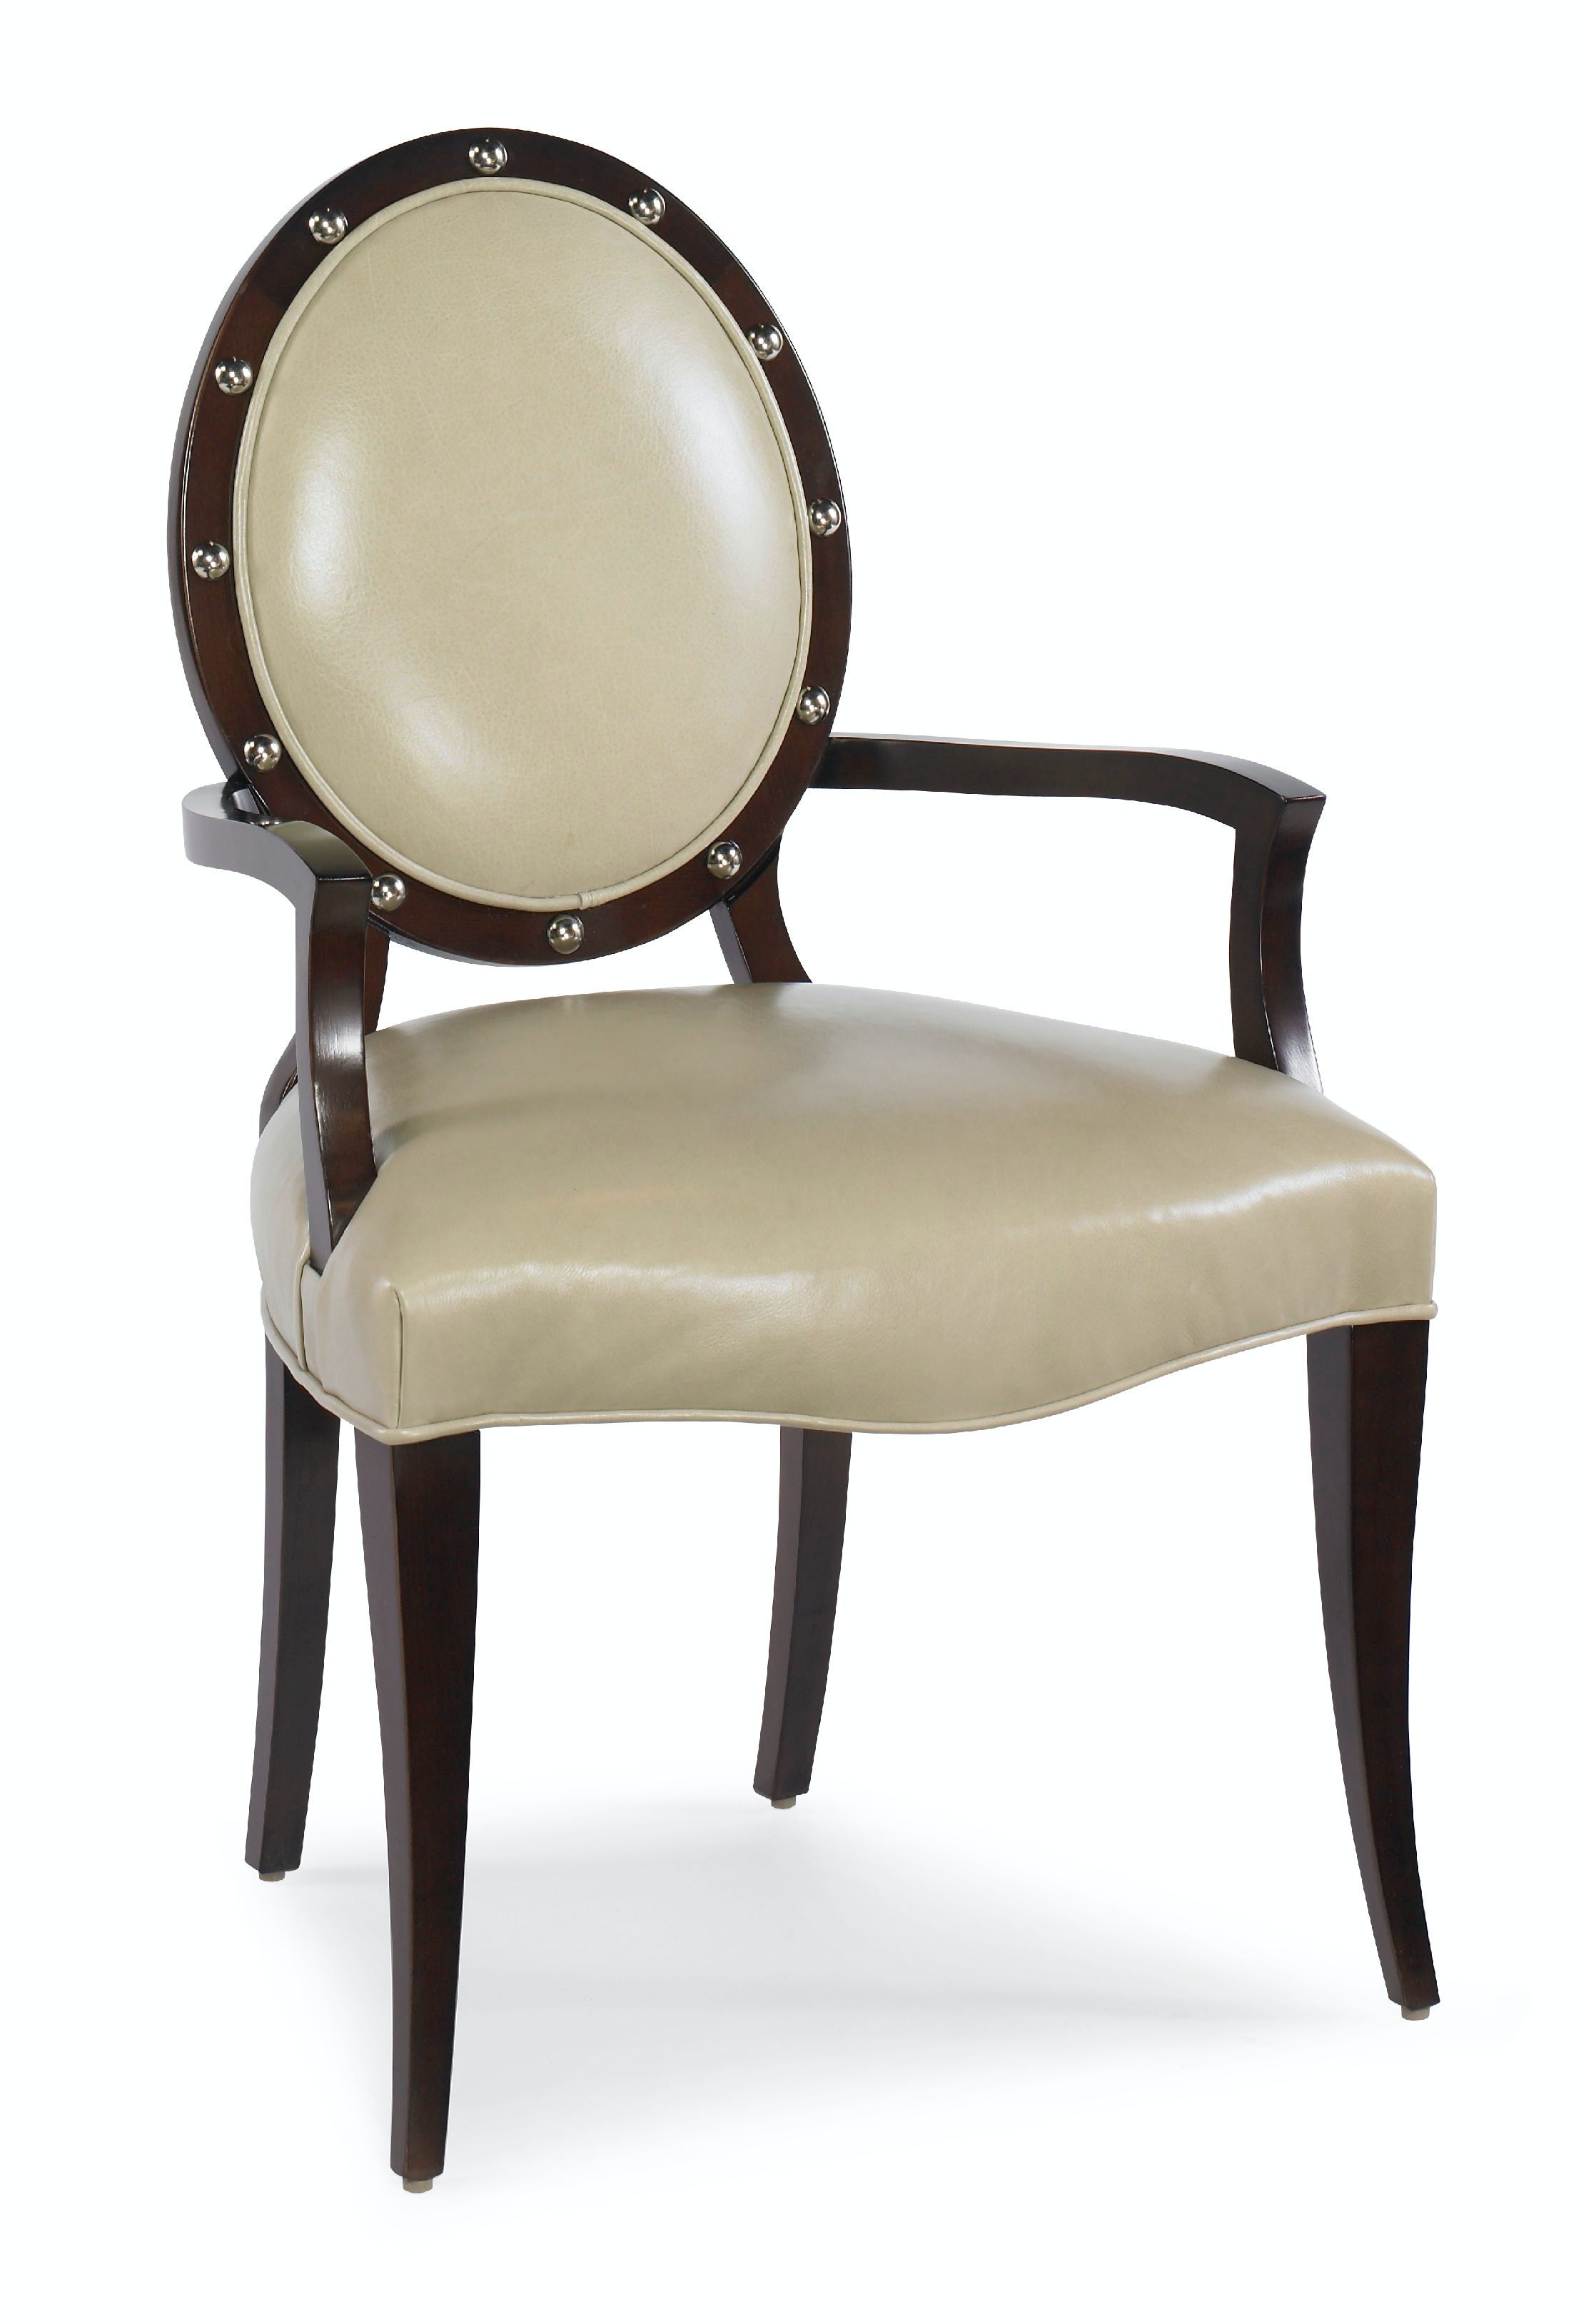 hickory chair louis xvi best dining chairs room arm 3105 11